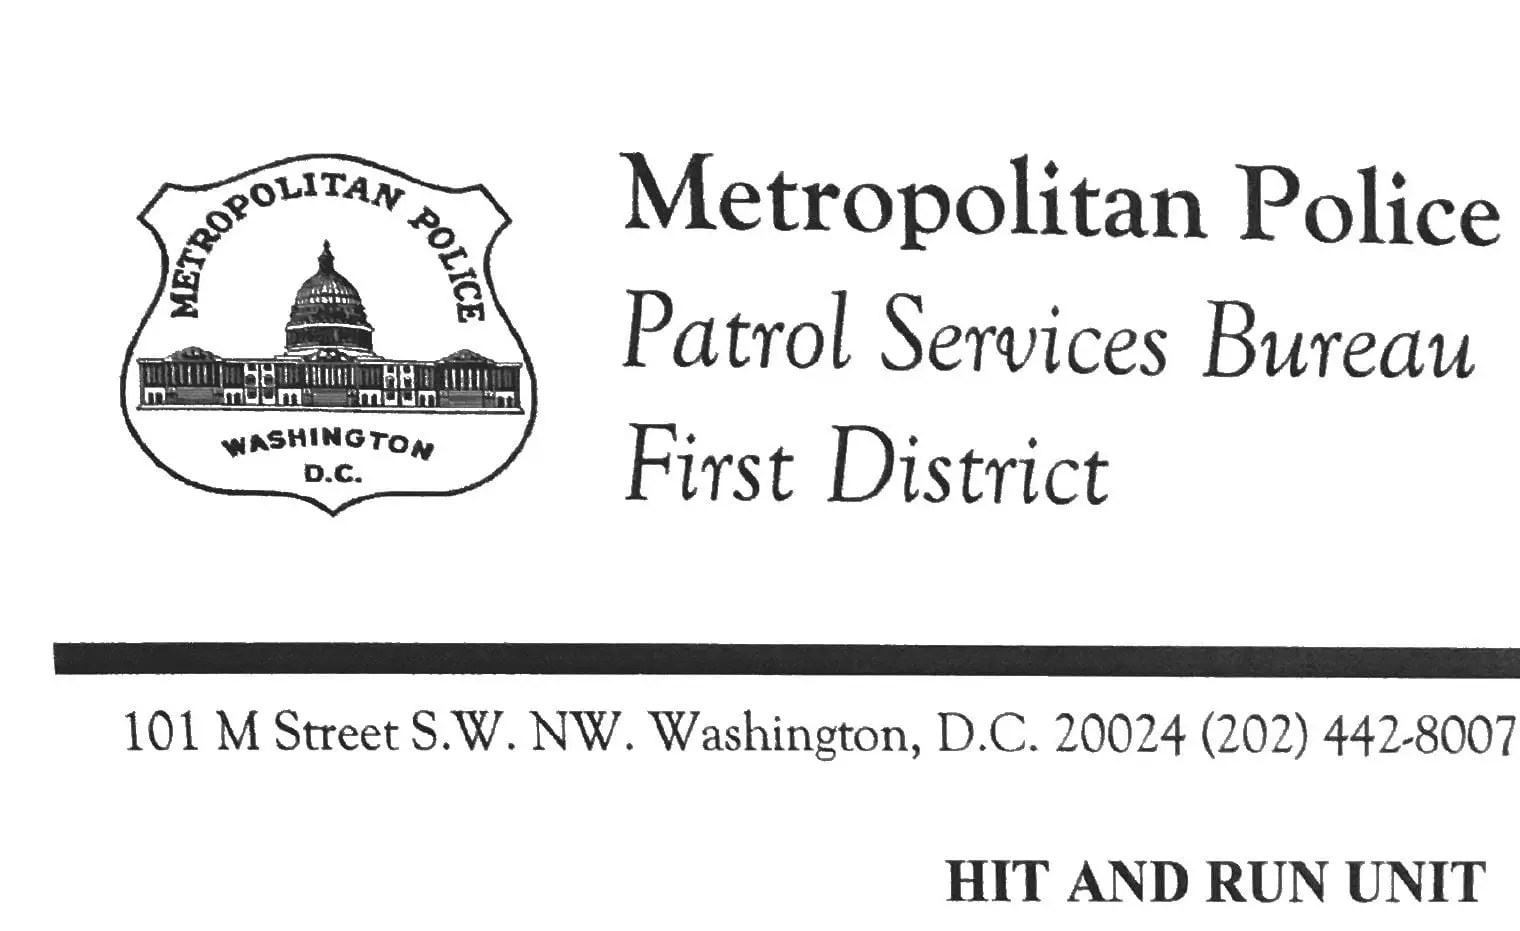 I received a letter from Metropolitan Police Department